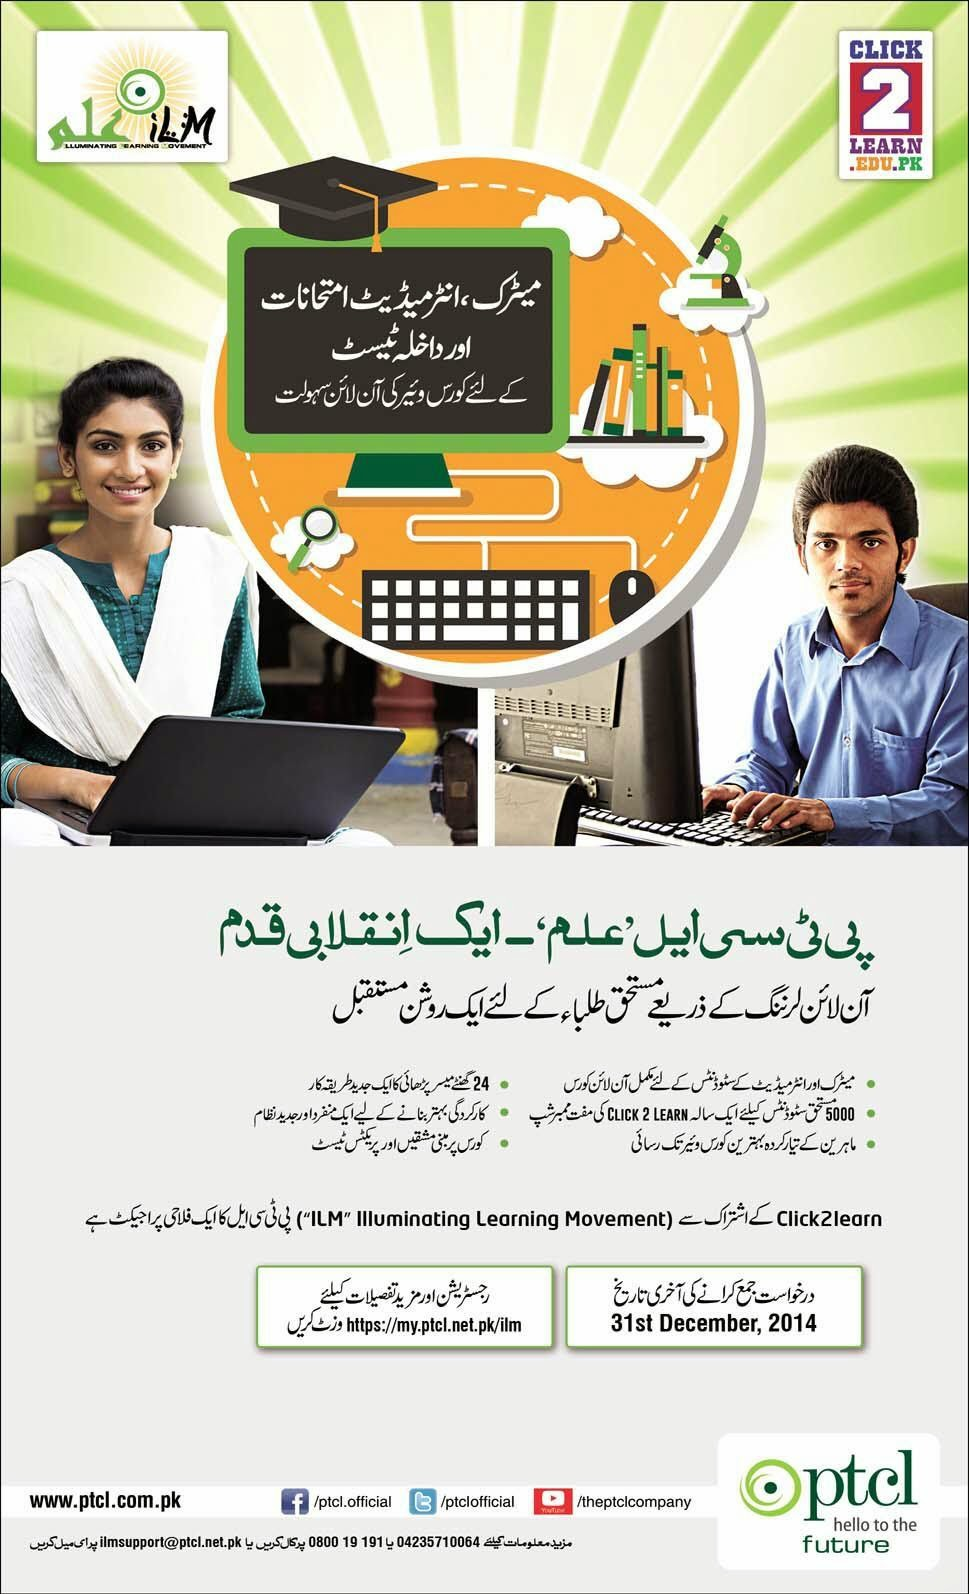 PTCL Online Courseware Tool for Matric ILM Initiative Intermediate Exams and Entry Tests